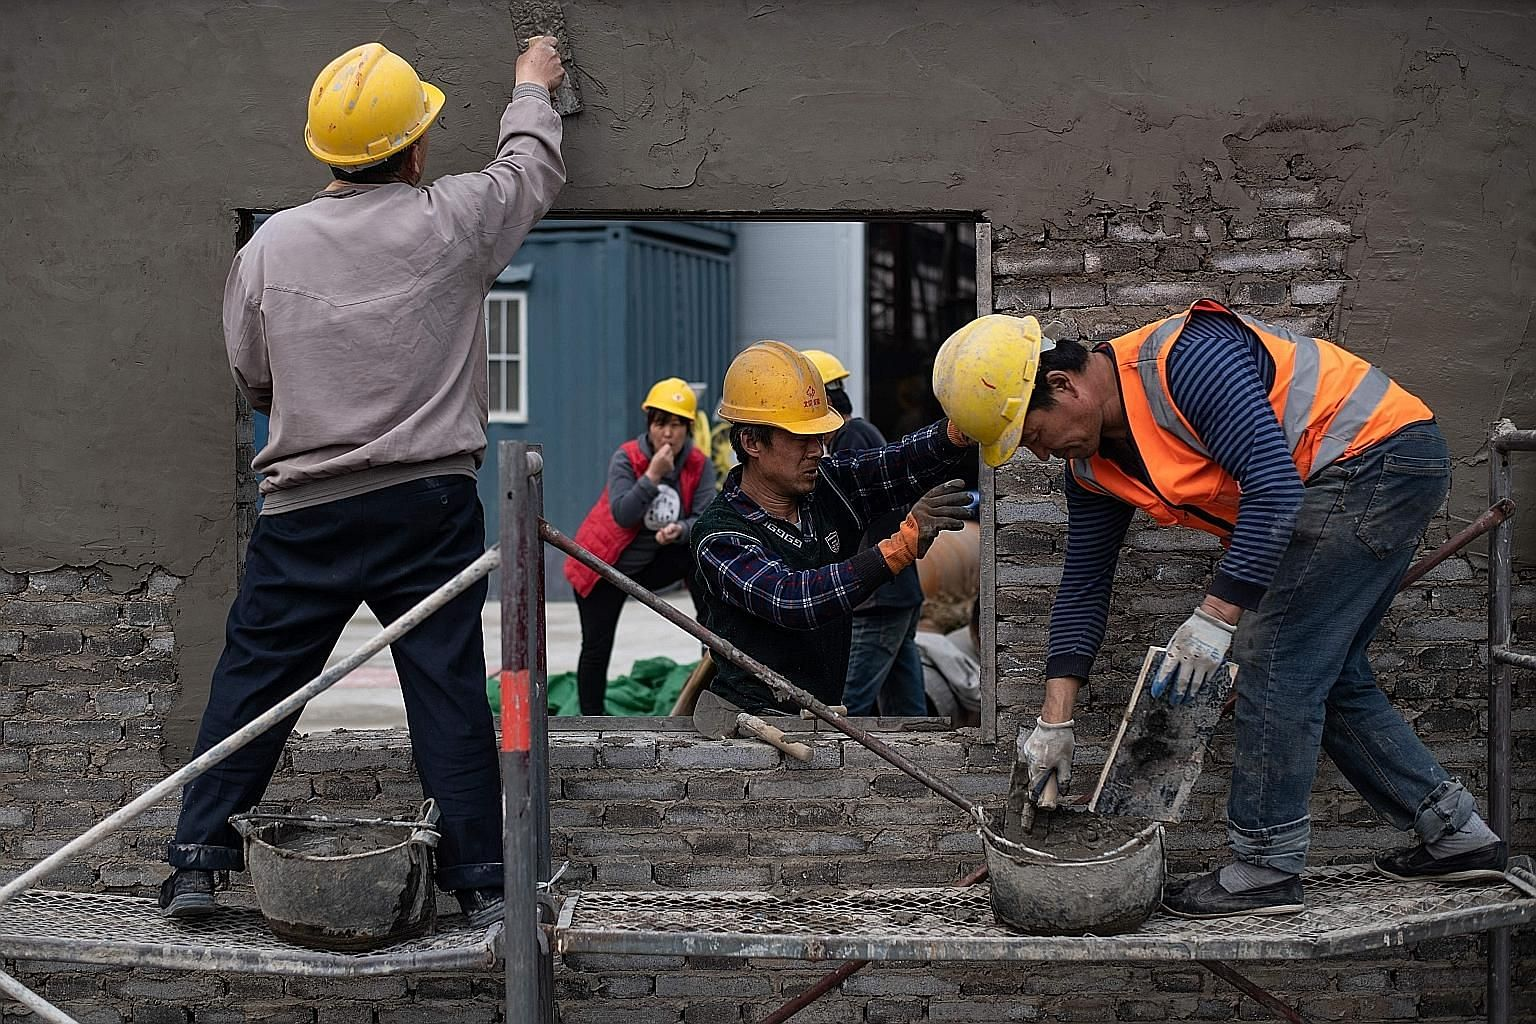 As of this month, nearly half of Xiang Hu Bao's members were migrant labourers while almost a third hailed from poorer rural areas. Ant said it is not an insurance product and is not subject to the same regulatory oversight governing traditional insu